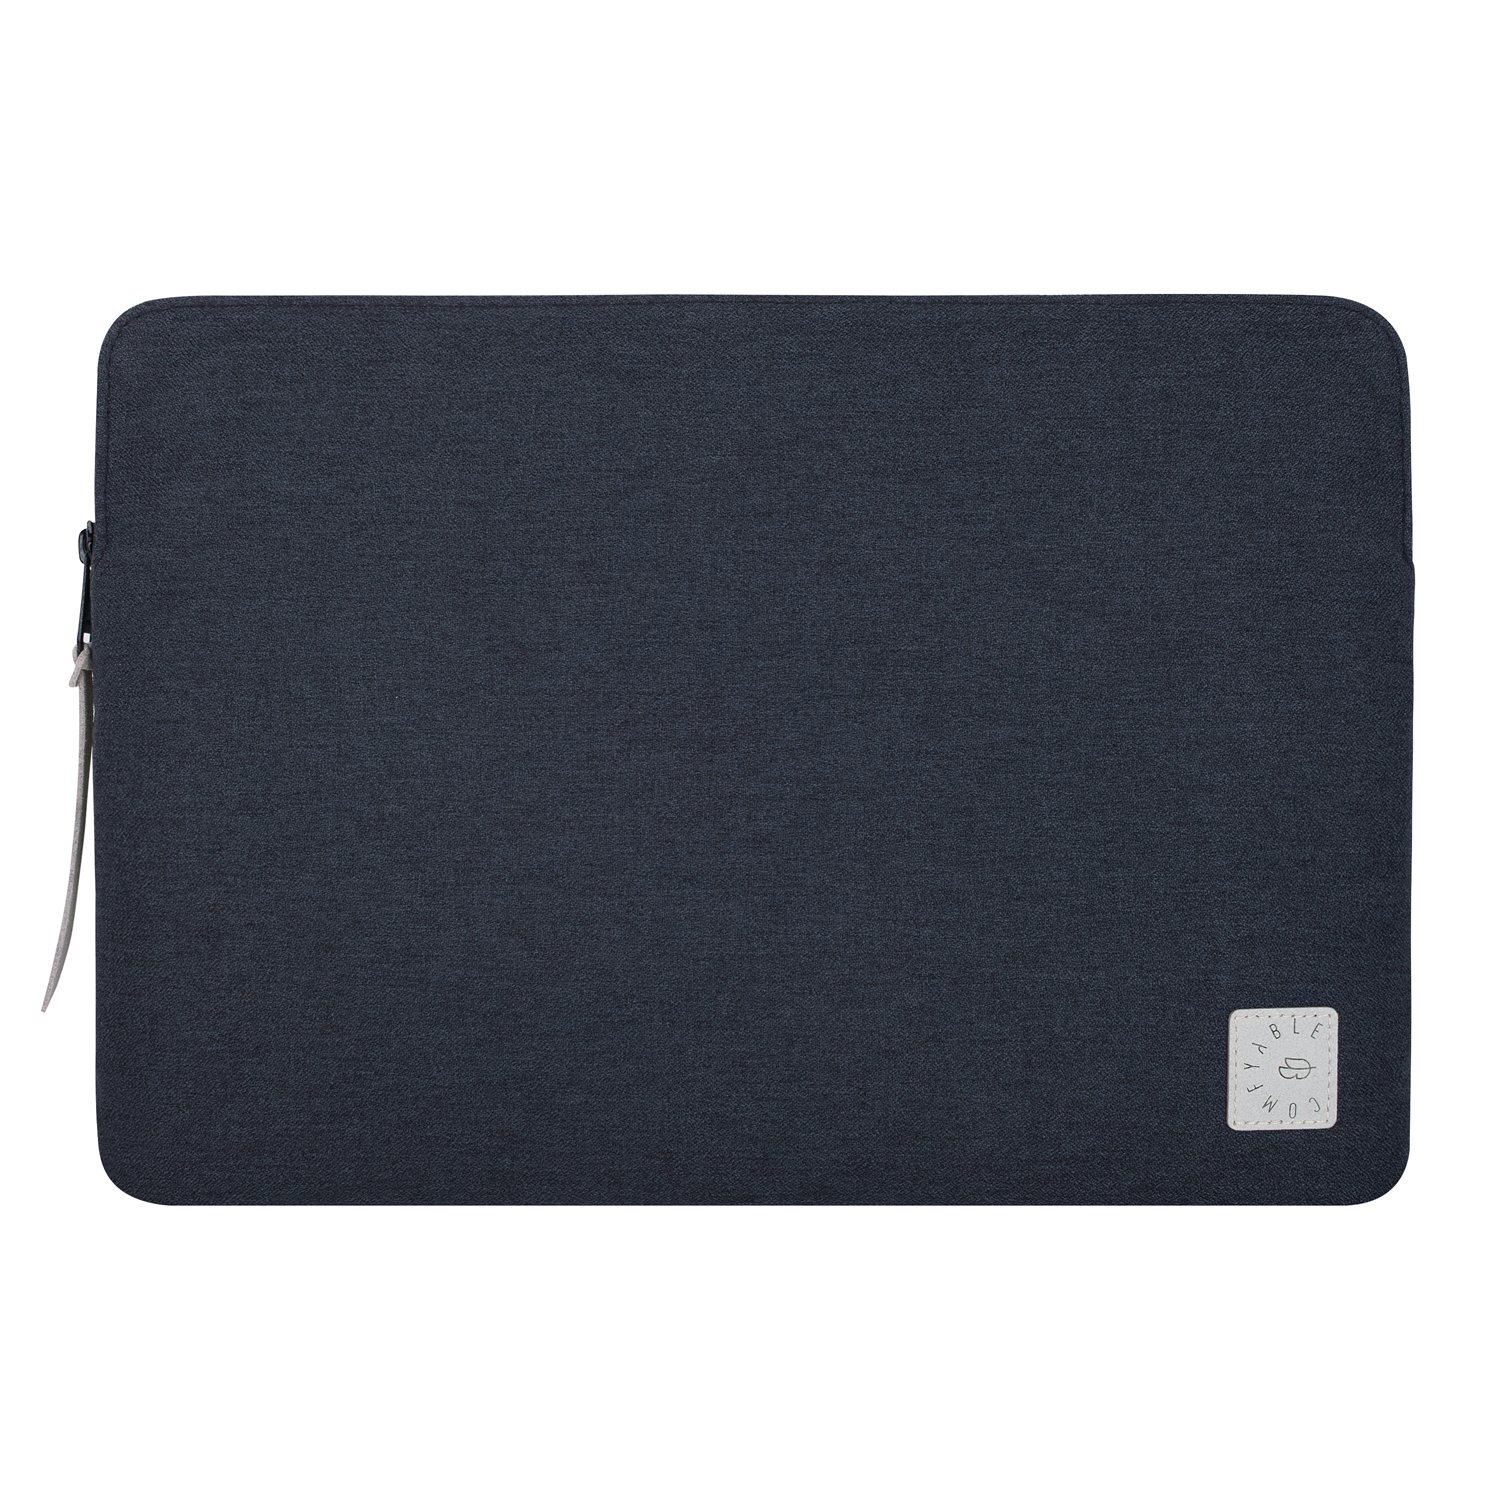 Comfyable Laptop Sleeve for MacBook Pro 13 Inch, MacBook Air 13 Inch, 12.9'' iPad Pro | Waterproof Computer Case Provides Safe Storage & Stylish, Sleek Design